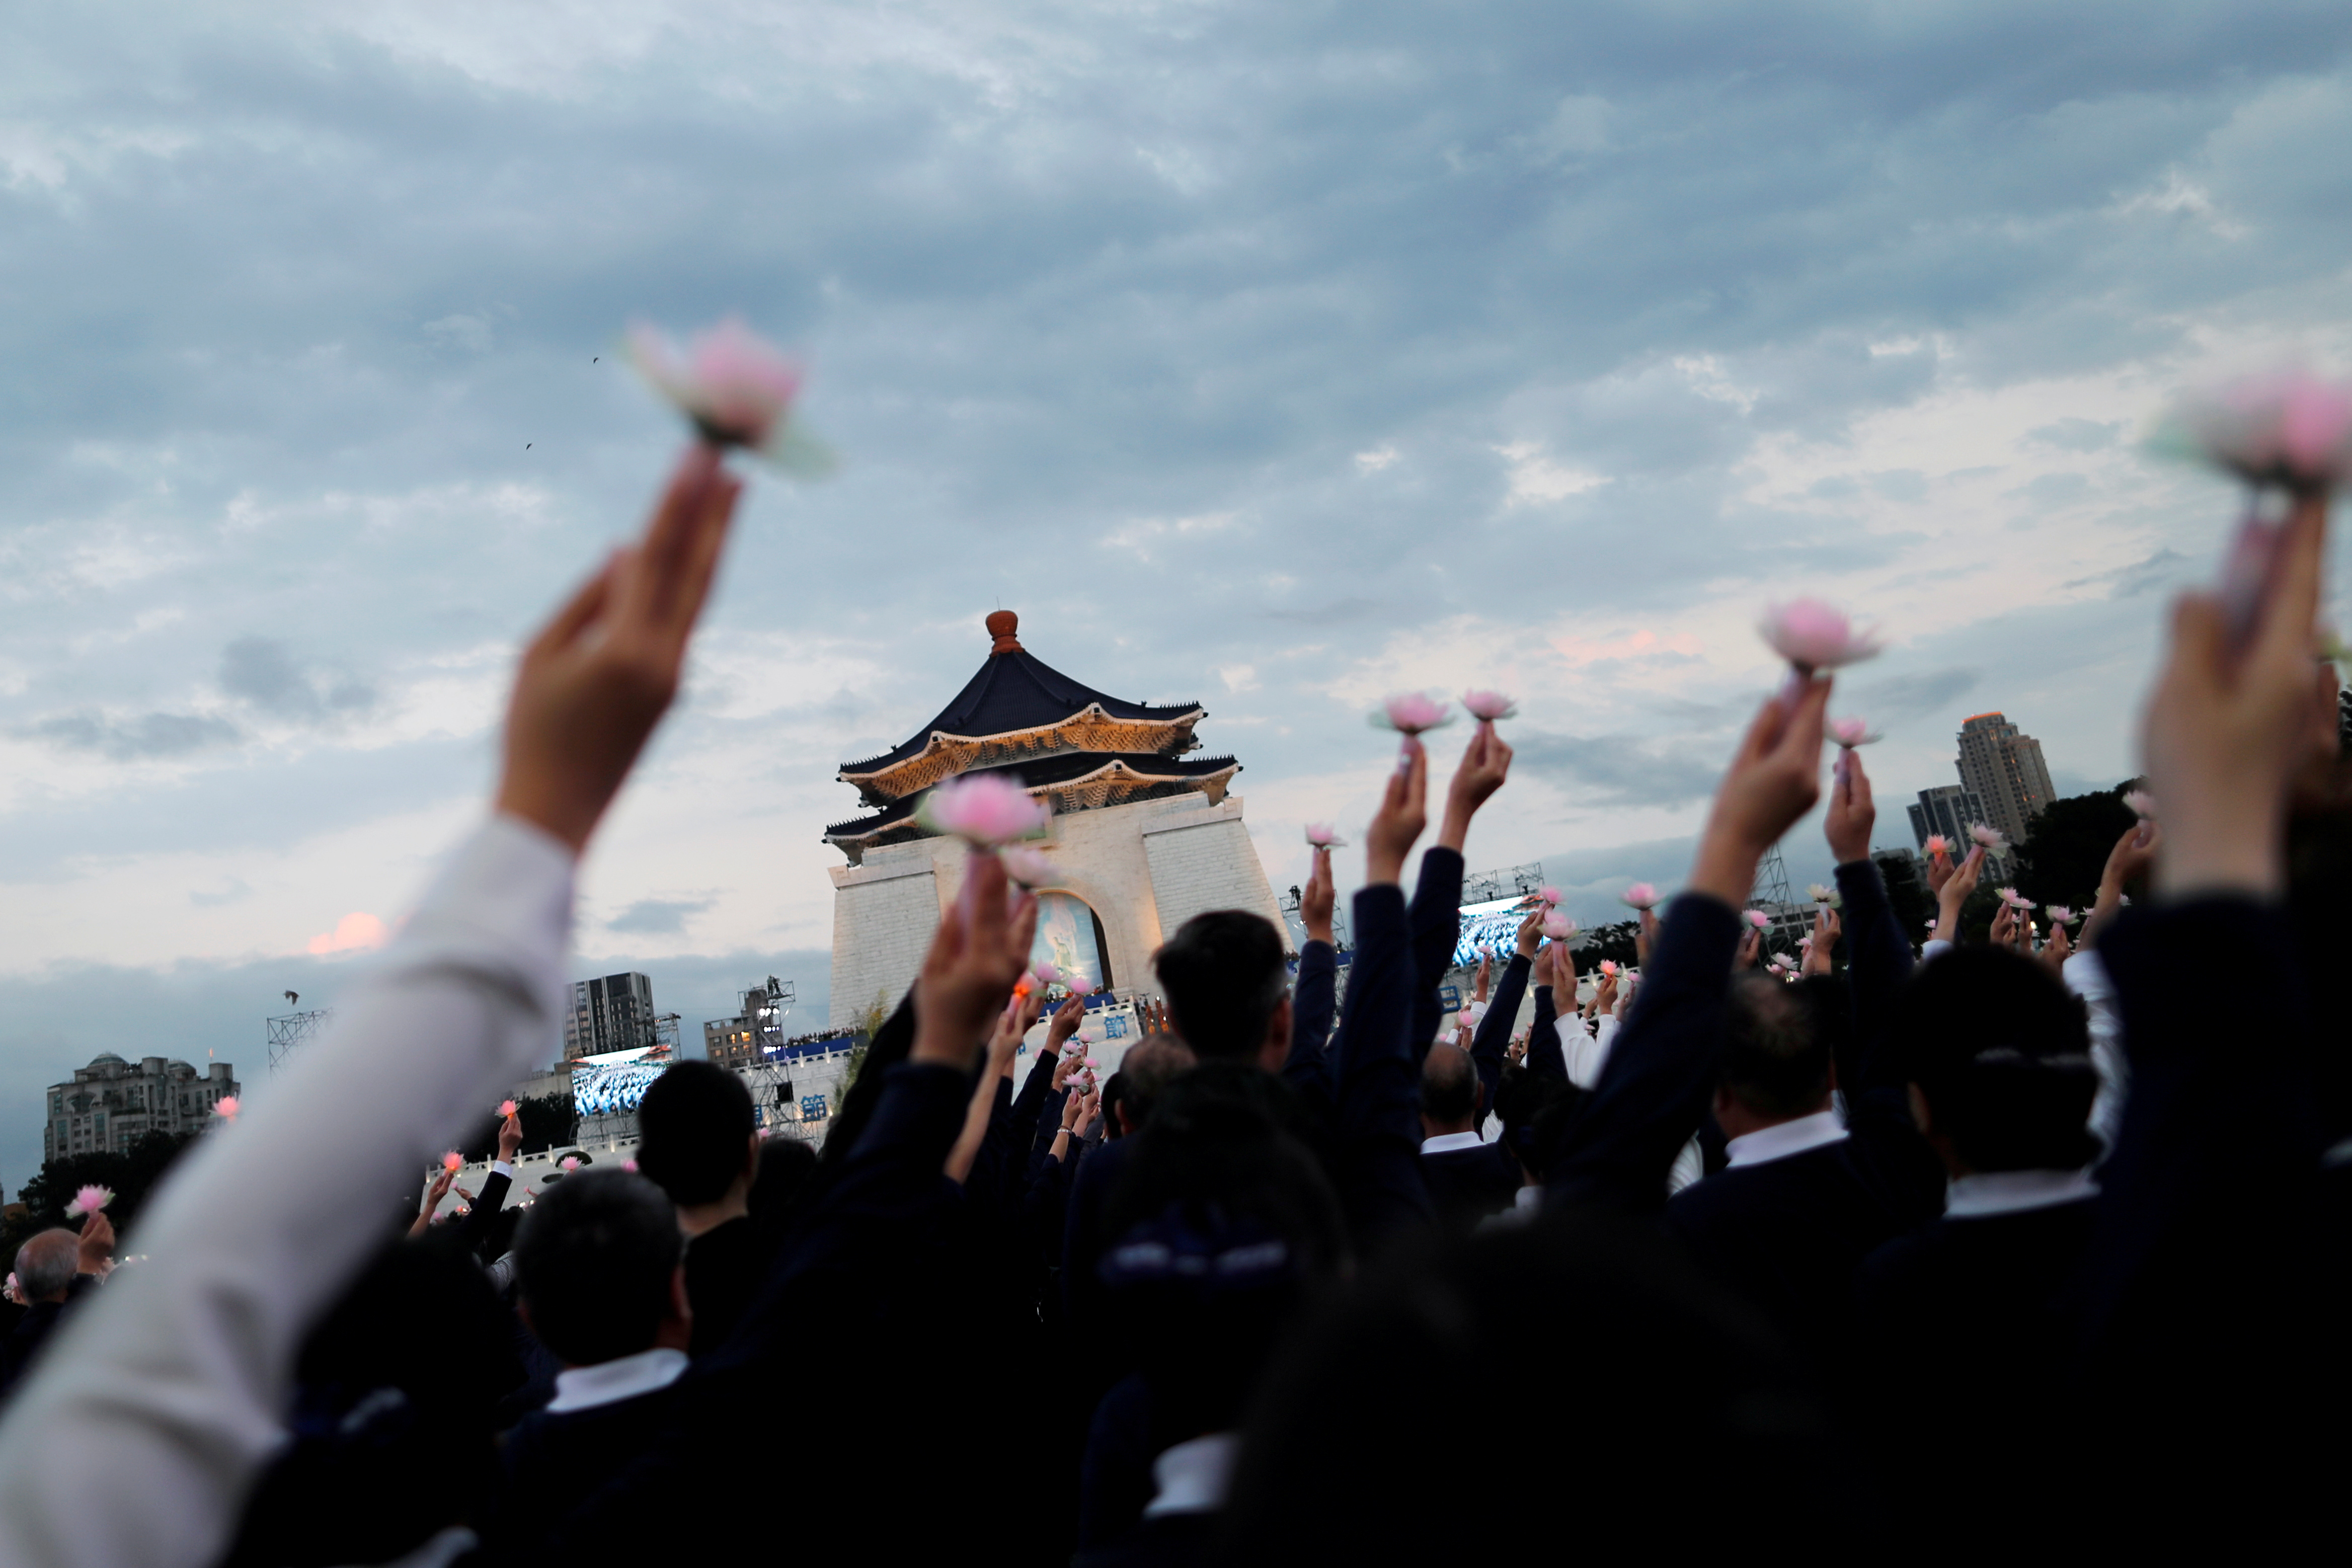 Members of the Buddhist Tzu Chi Foundation pray during a ceremony to commemorate the birth of Buddha, at the Liberty Square in Taipei, Taiwan May 12, 2019. REUTERS/Tyrone Siu TPX IMAGES OF THE DAY